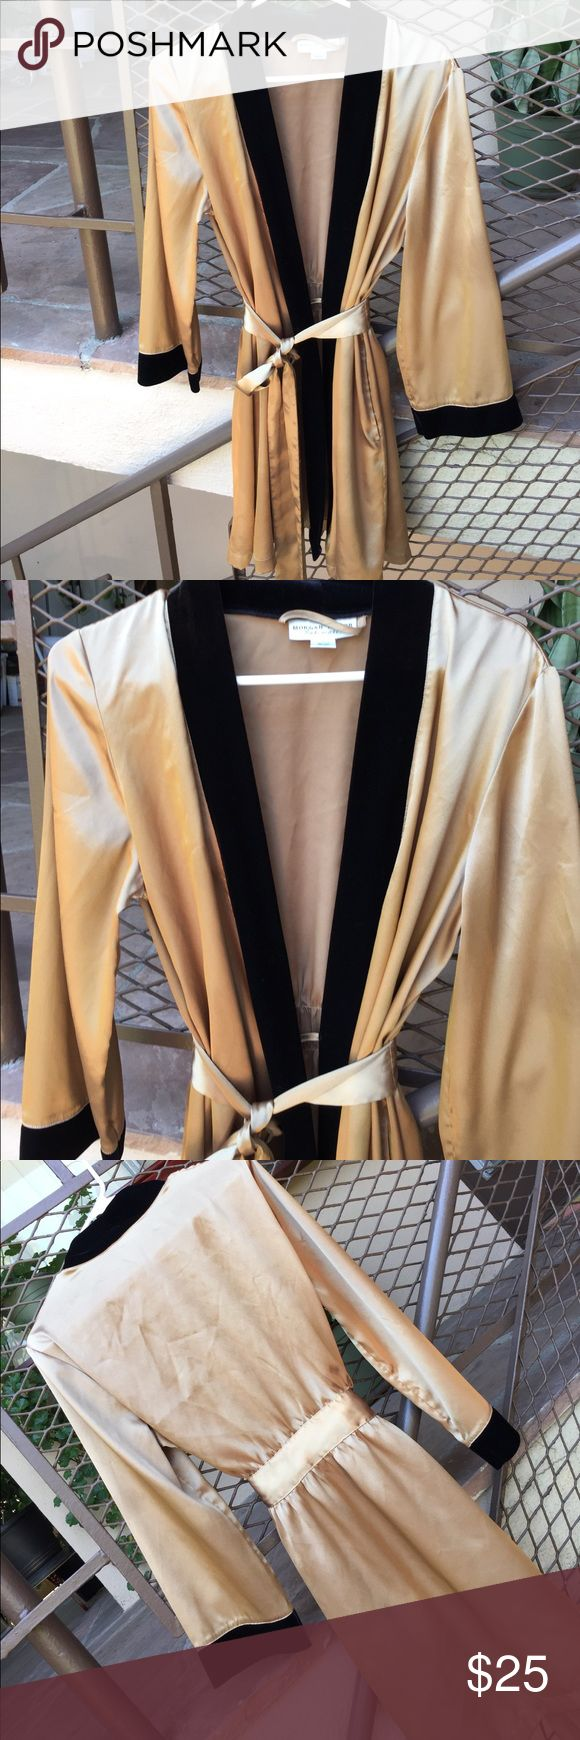 Morgan Taylor Intimates Women's Gold Short Robe This is the coolest satin like Robe ever! It is in perfect never worn condition. It is 100% Polyester but looks like satin and trim looks like velvet. You will love it and has sash and inside tie as well. Take this for that weekend date and look glamorous for room service in your he morning! Morgan Taylor Intimates Intimates & Sleepwear Robes